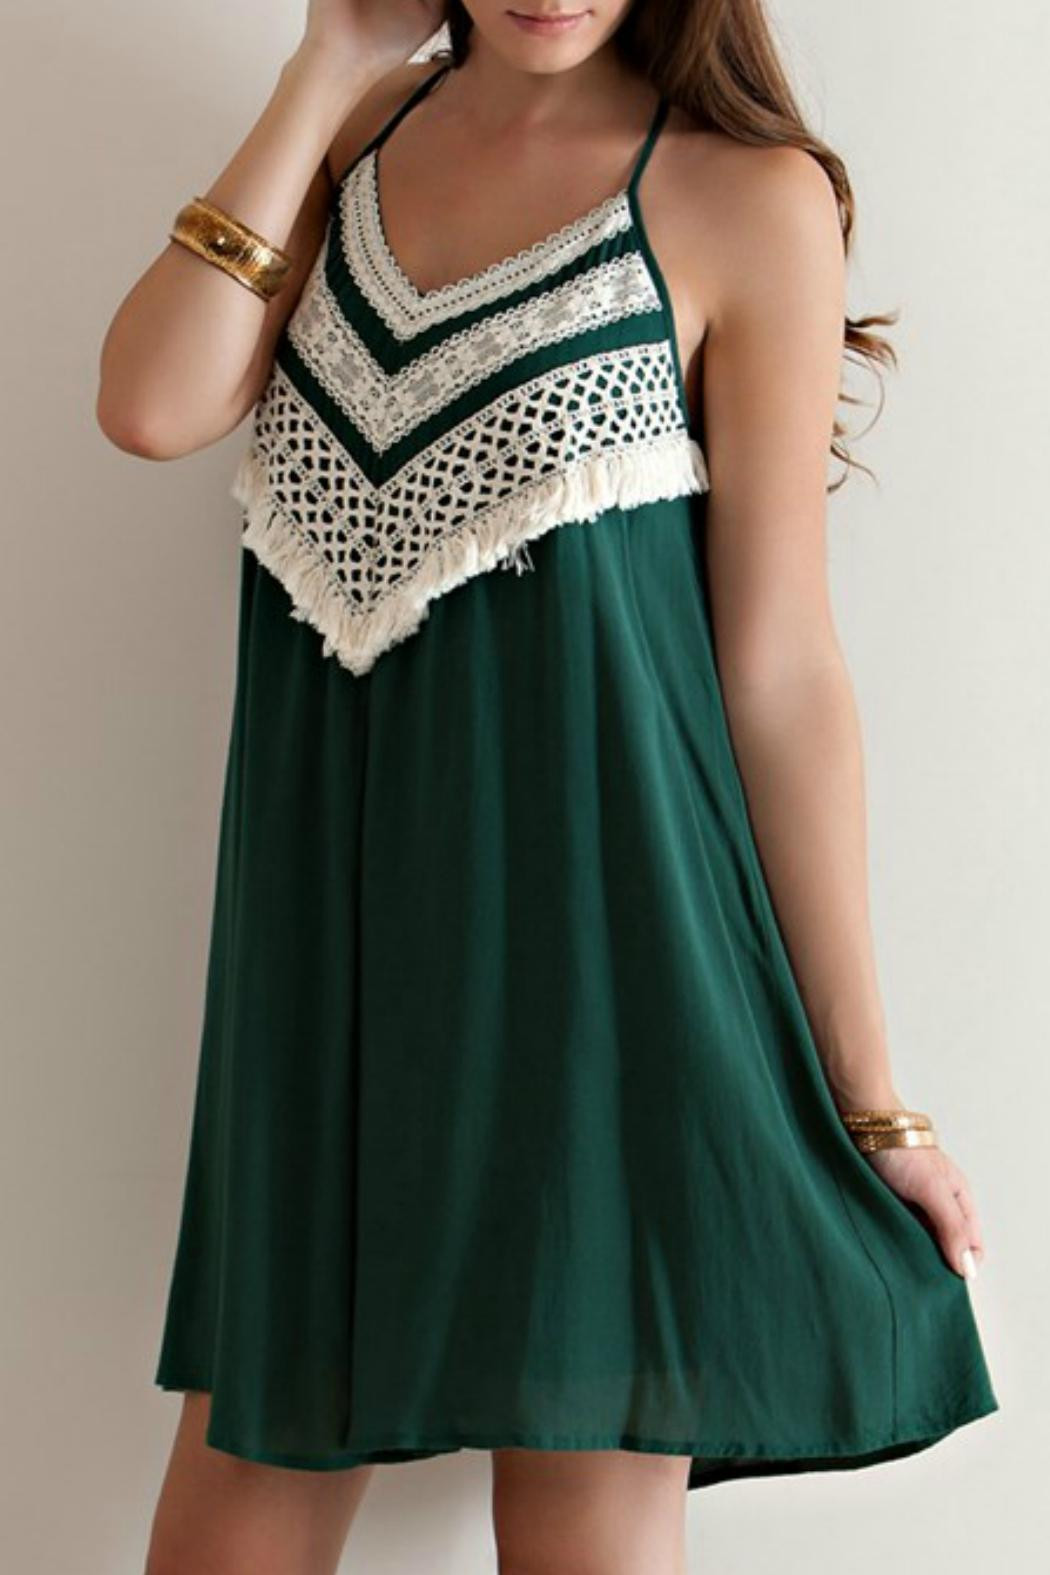 Entro Halter Crochet Dress from Maryland by swank